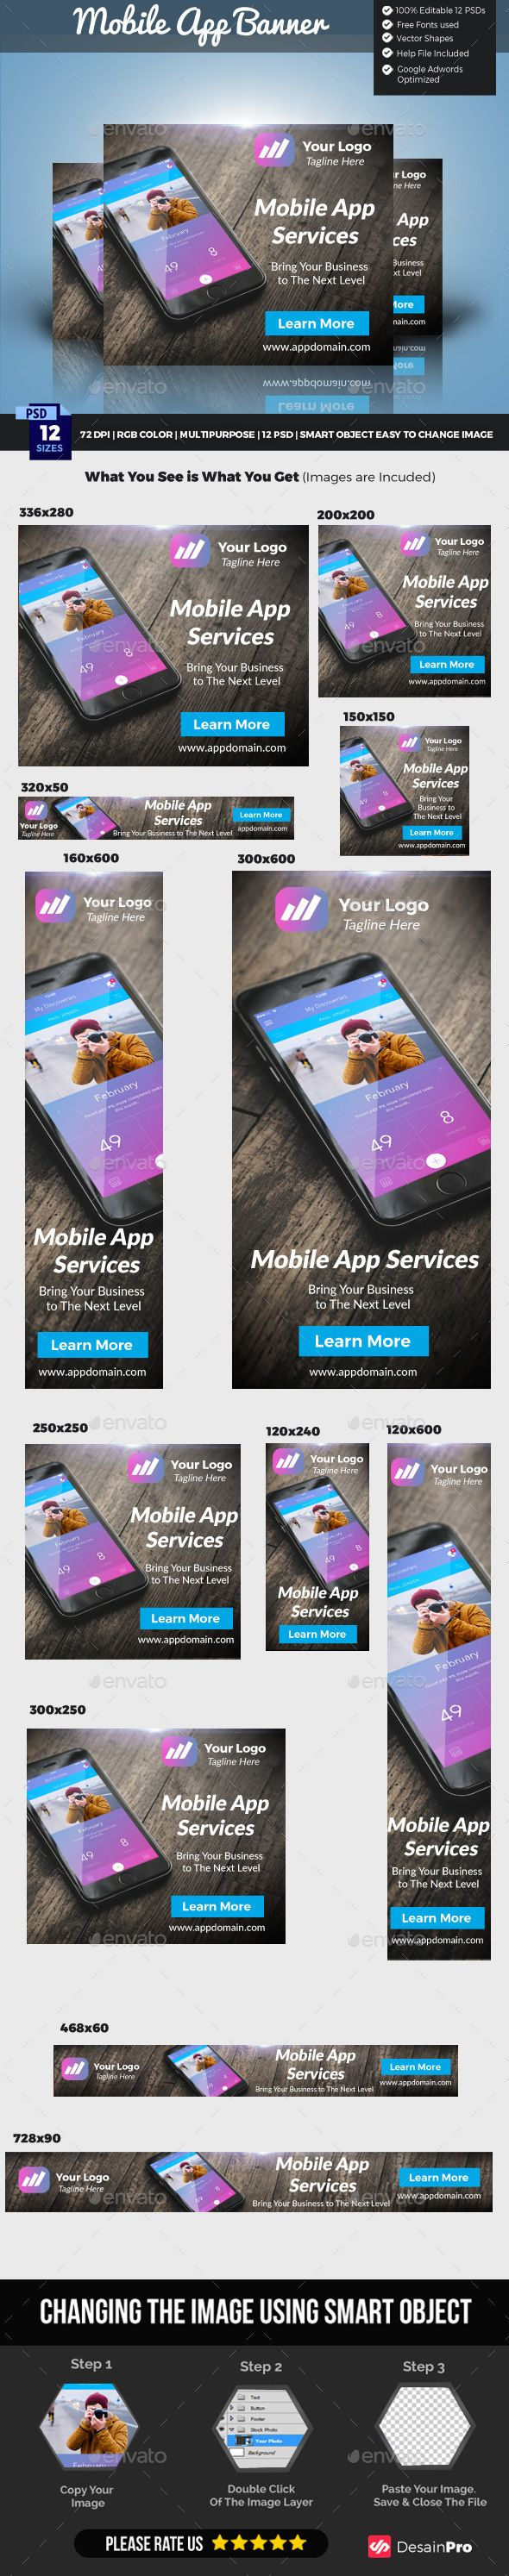 12 Standard Web Ad Mobile Apps Sizes Template PSD